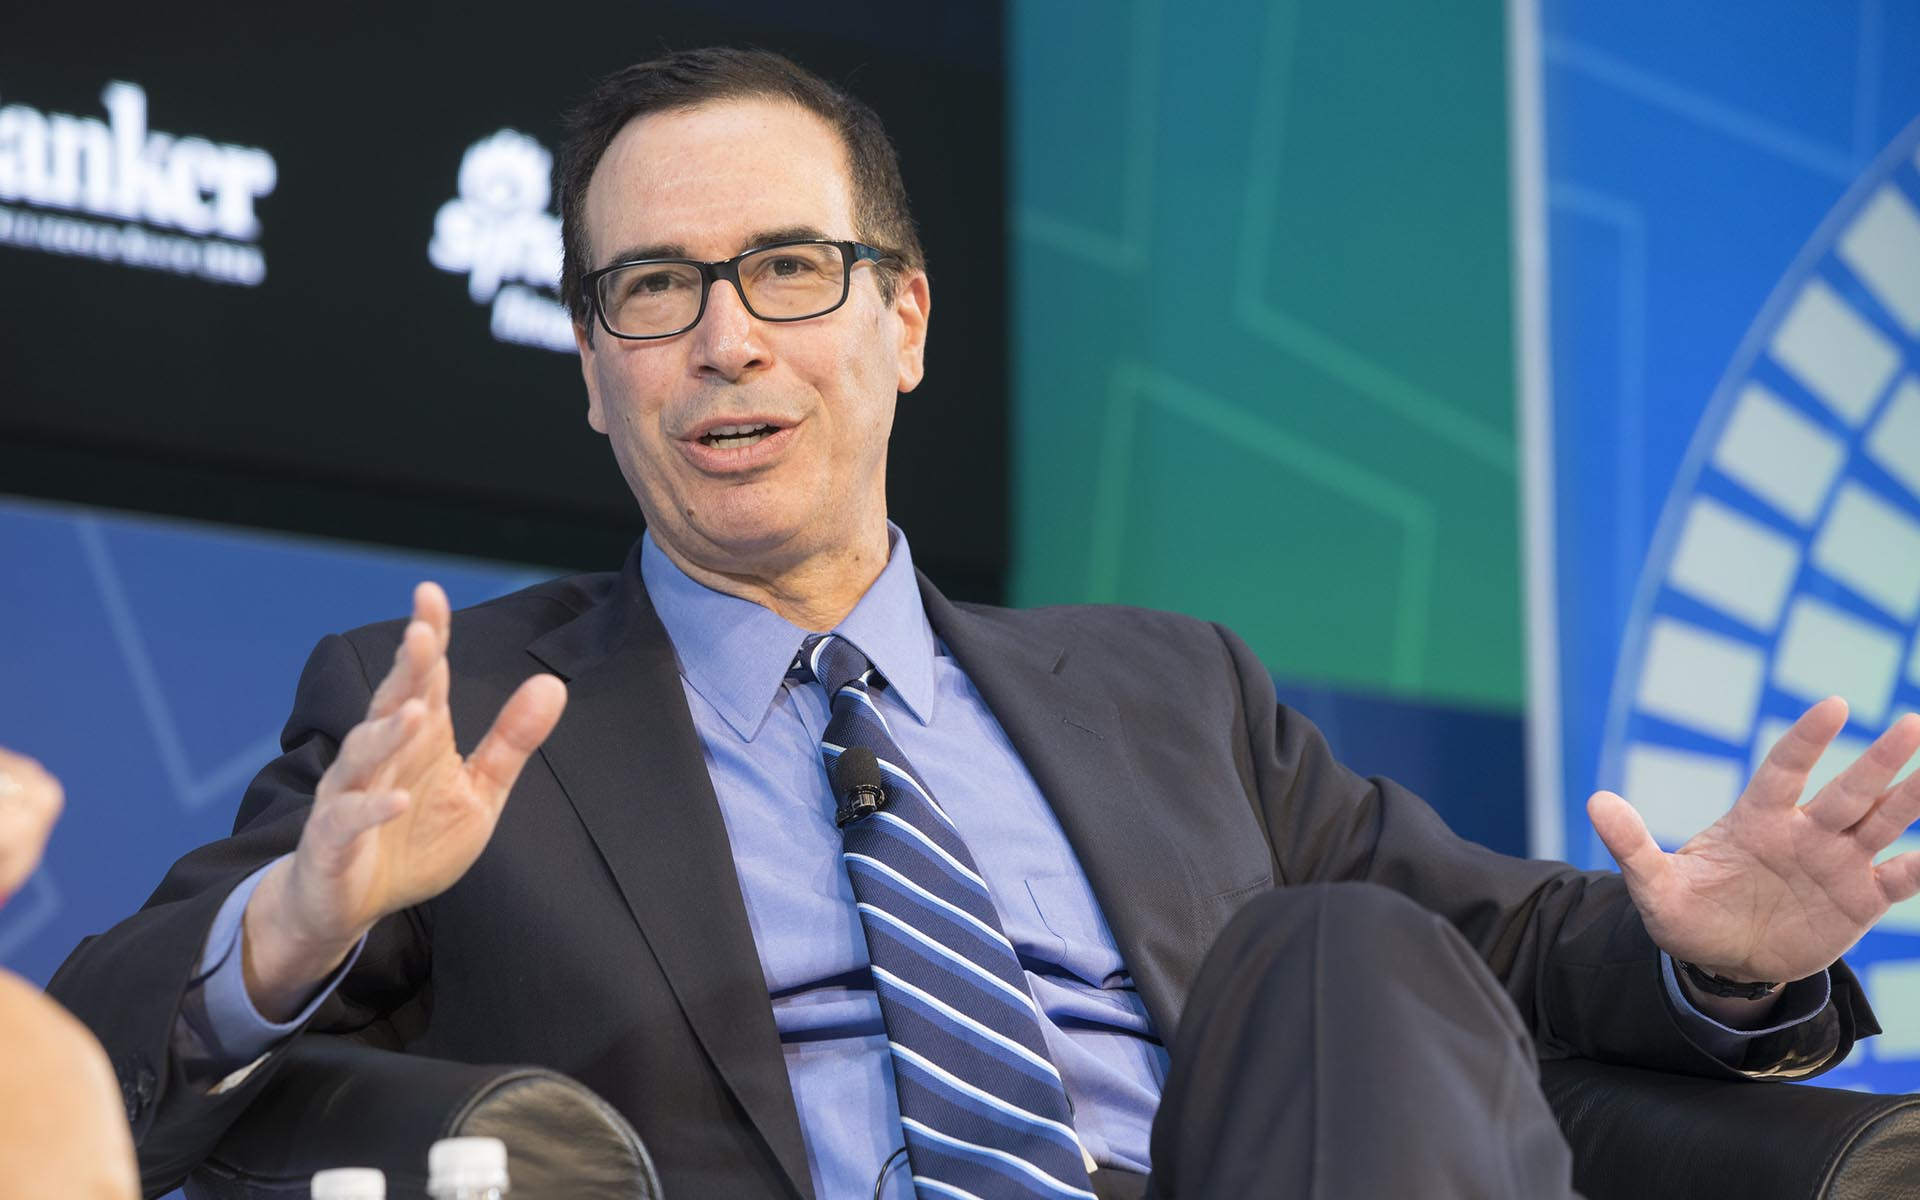 Treasury Sec. Mnuchin Says 'We're Looking Closely' at Bitcoin, Cryptocurrencies